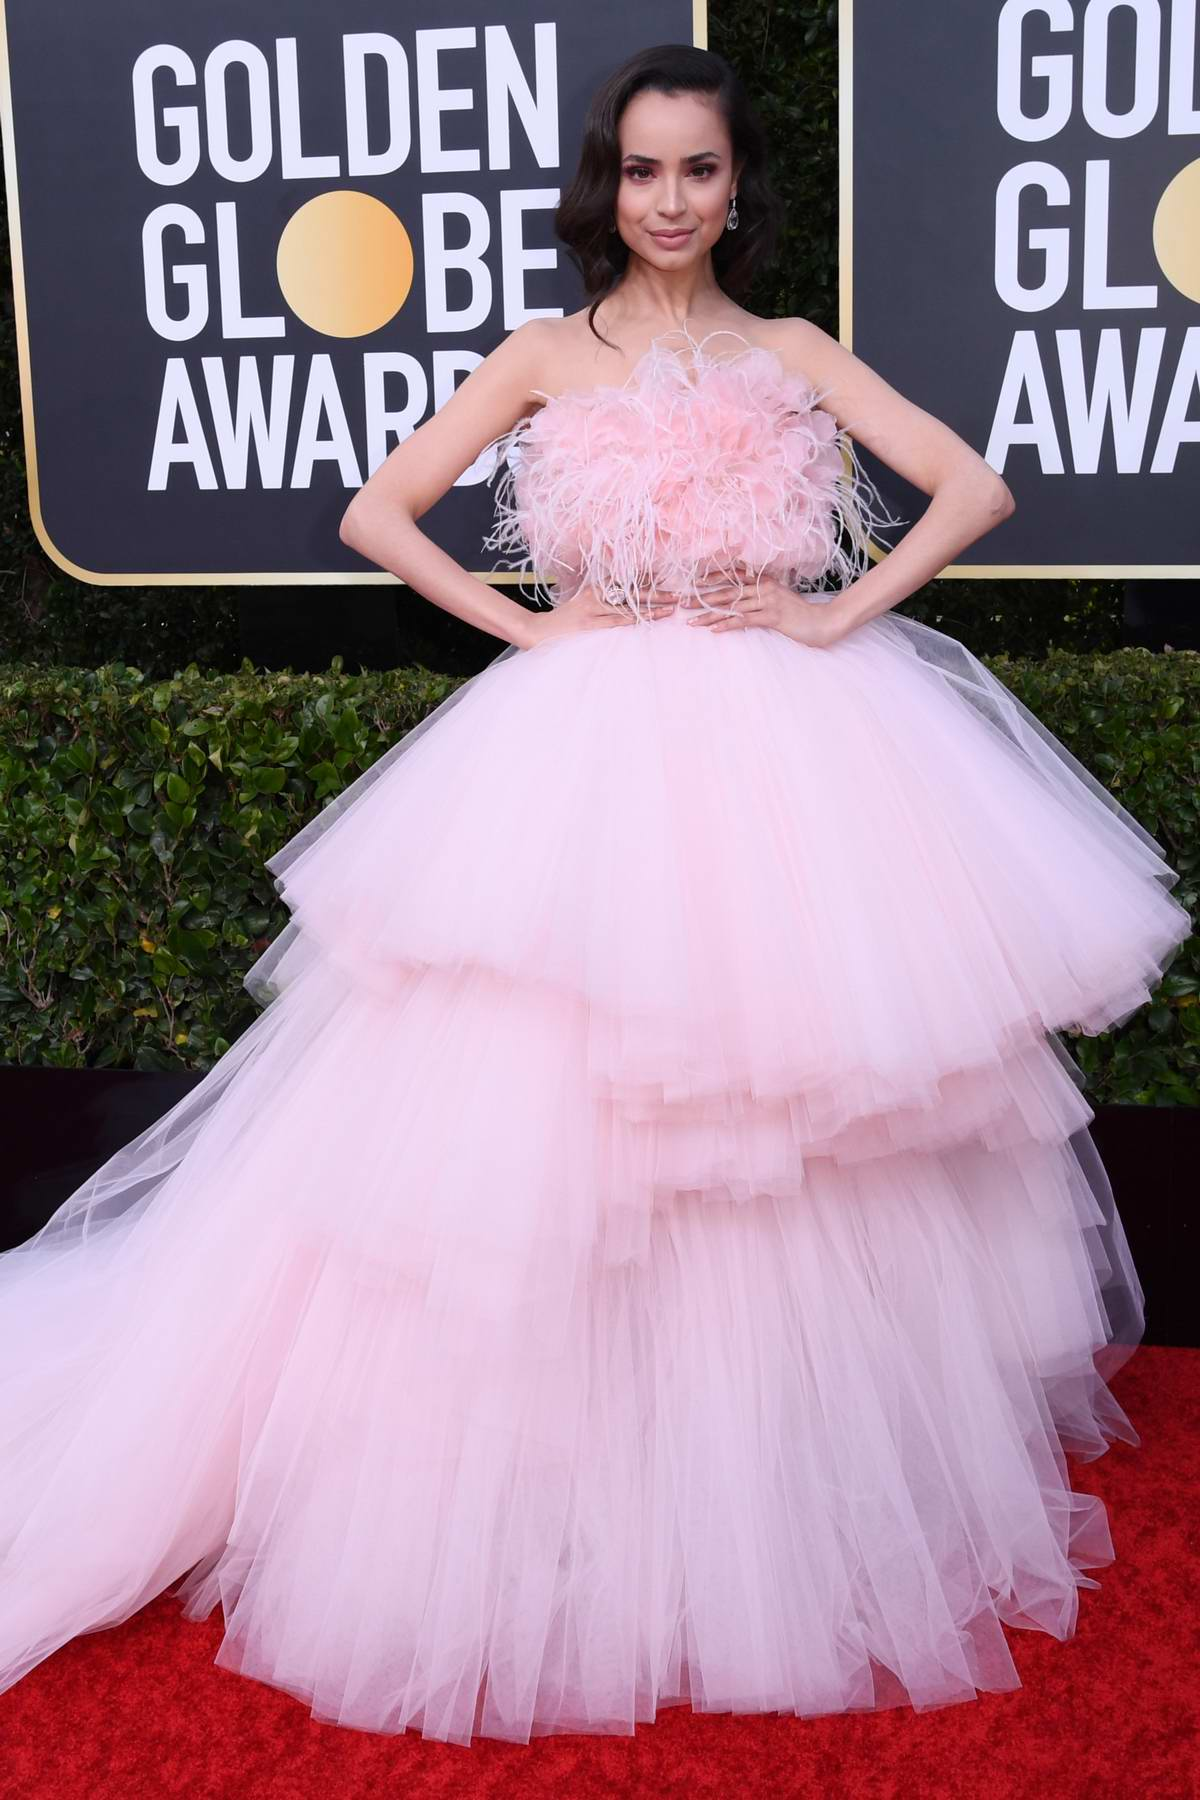 Sofia Carson attends the 77th Annual Golden Globe Awards at The Beverly Hilton Hotel in Beverly Hills, California